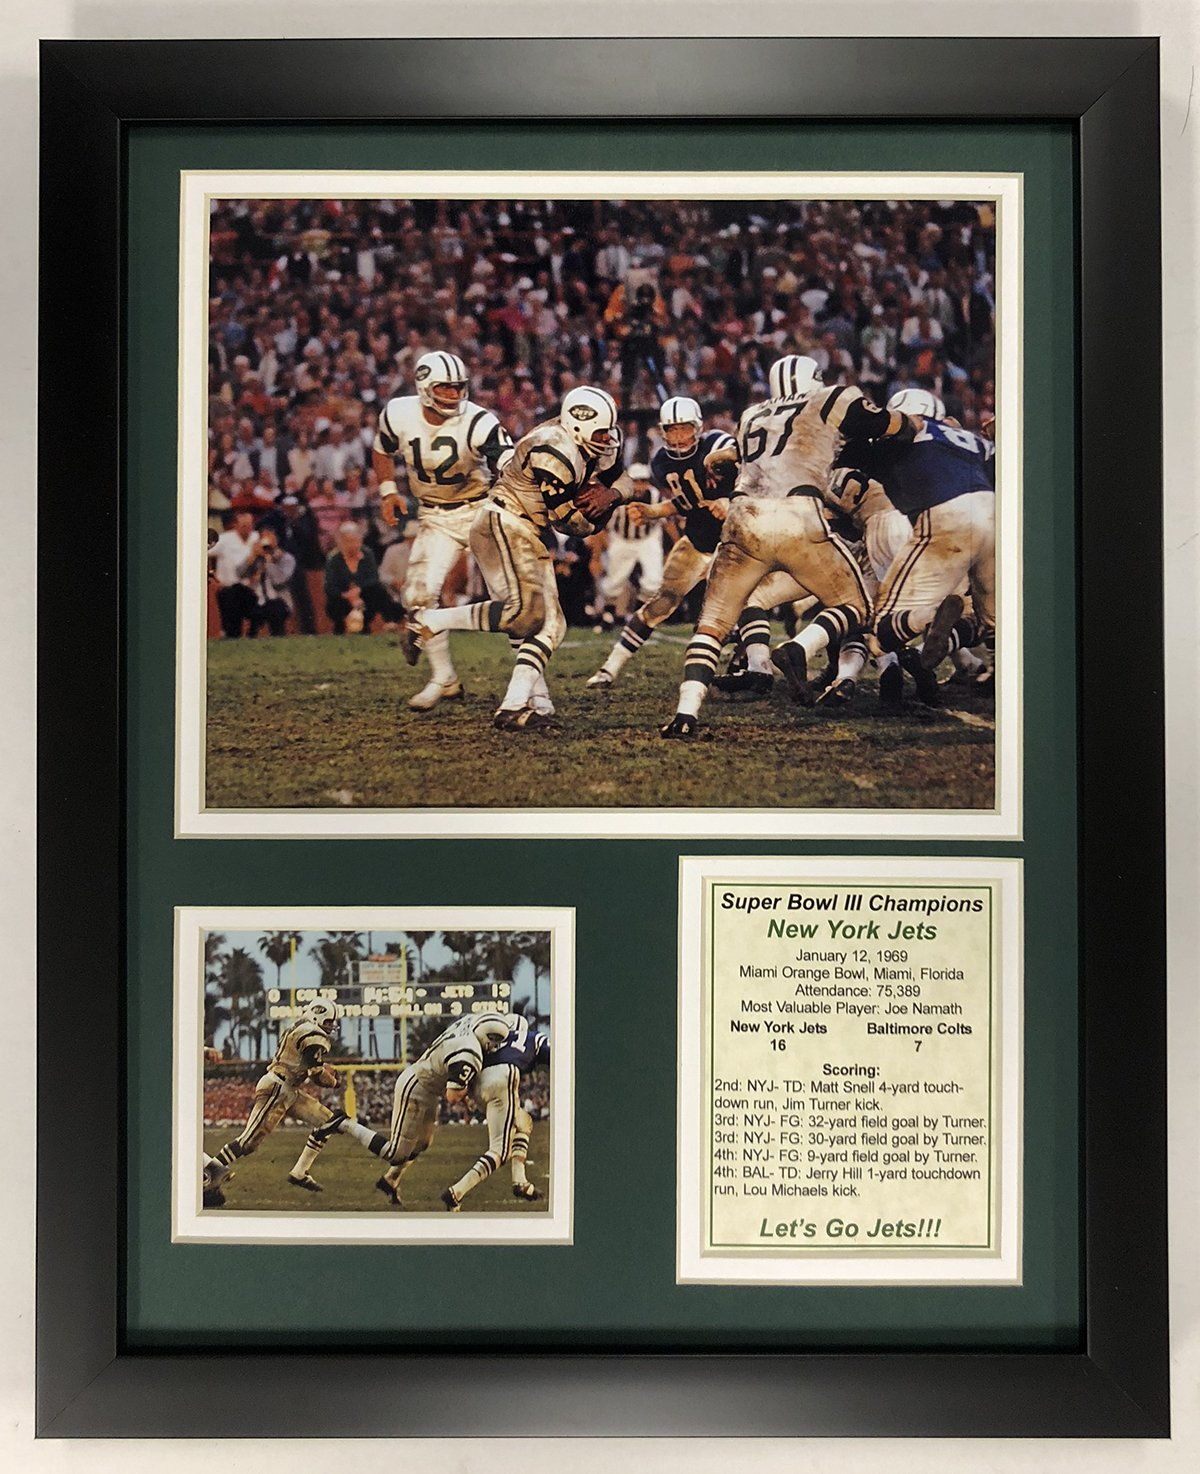 Legends Never Die NFL 1968 New York Jets Super Bowl III Champions Framed Double Matted Photos, 12' x 15'